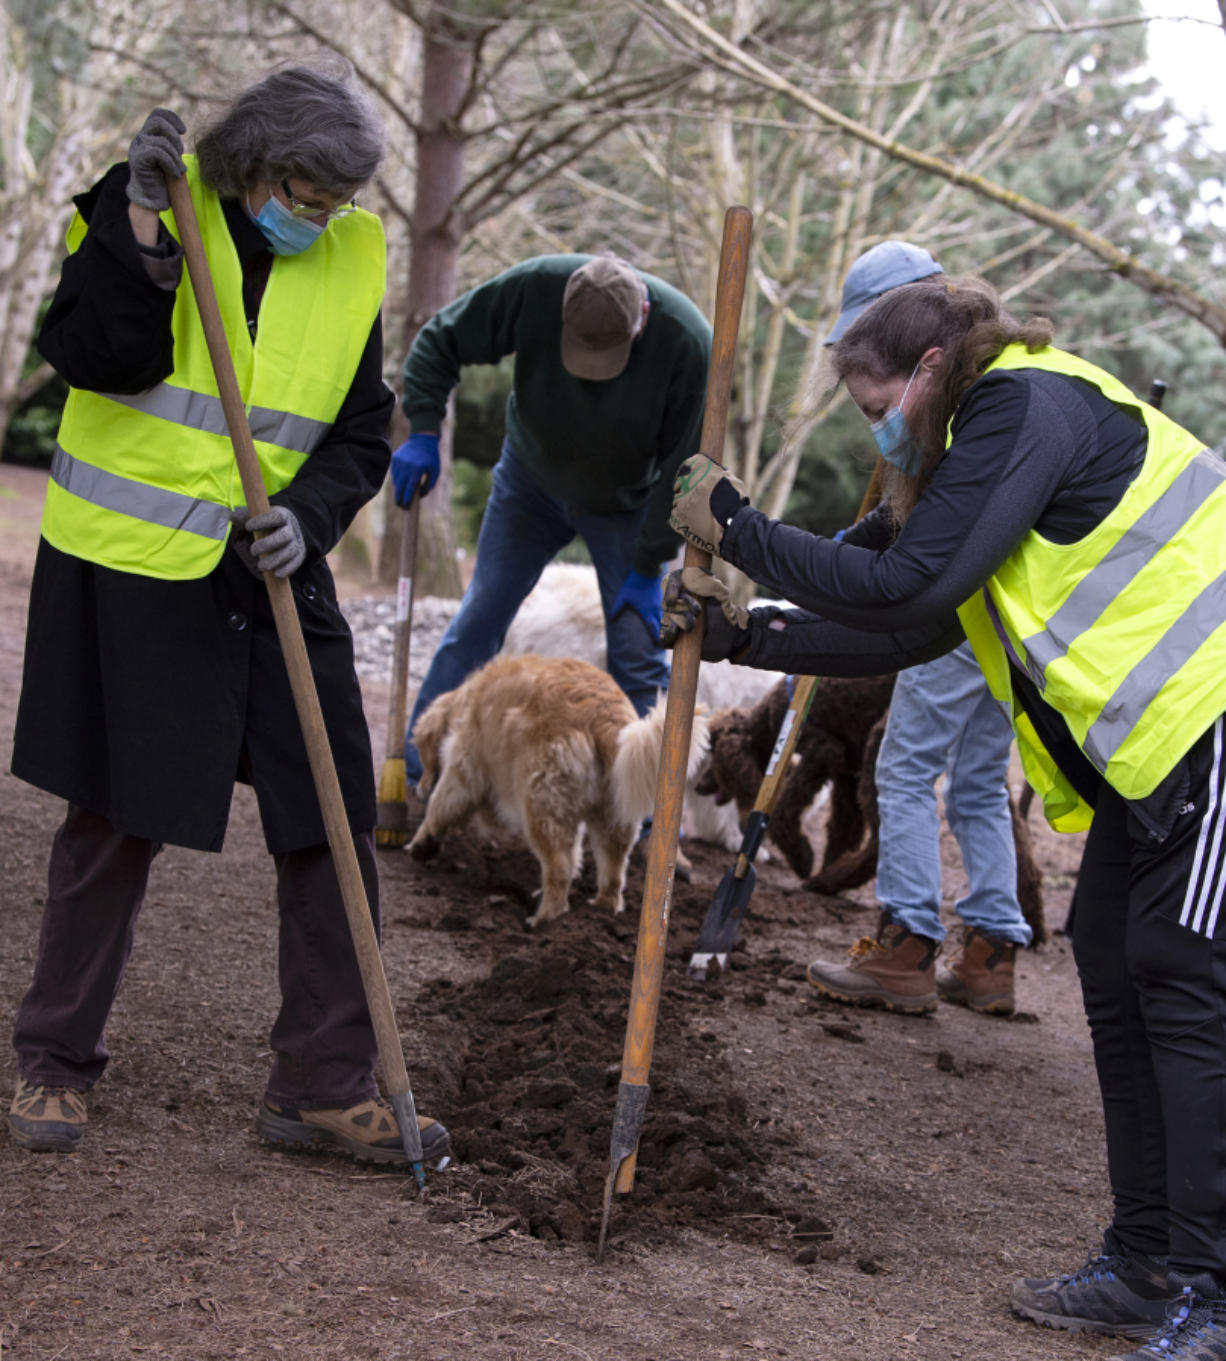 Volunteer Mary Carling, left, and former DOGPAW president Eileen Cervantes help dig a trench on Saturday at Ike Memorial Dog Park in Vancouver. DOGPAW held its volunteer cleanup Saturday, as more than a dozen volunteers dug a trench to help filter water away from some of the muddier spots of the park.